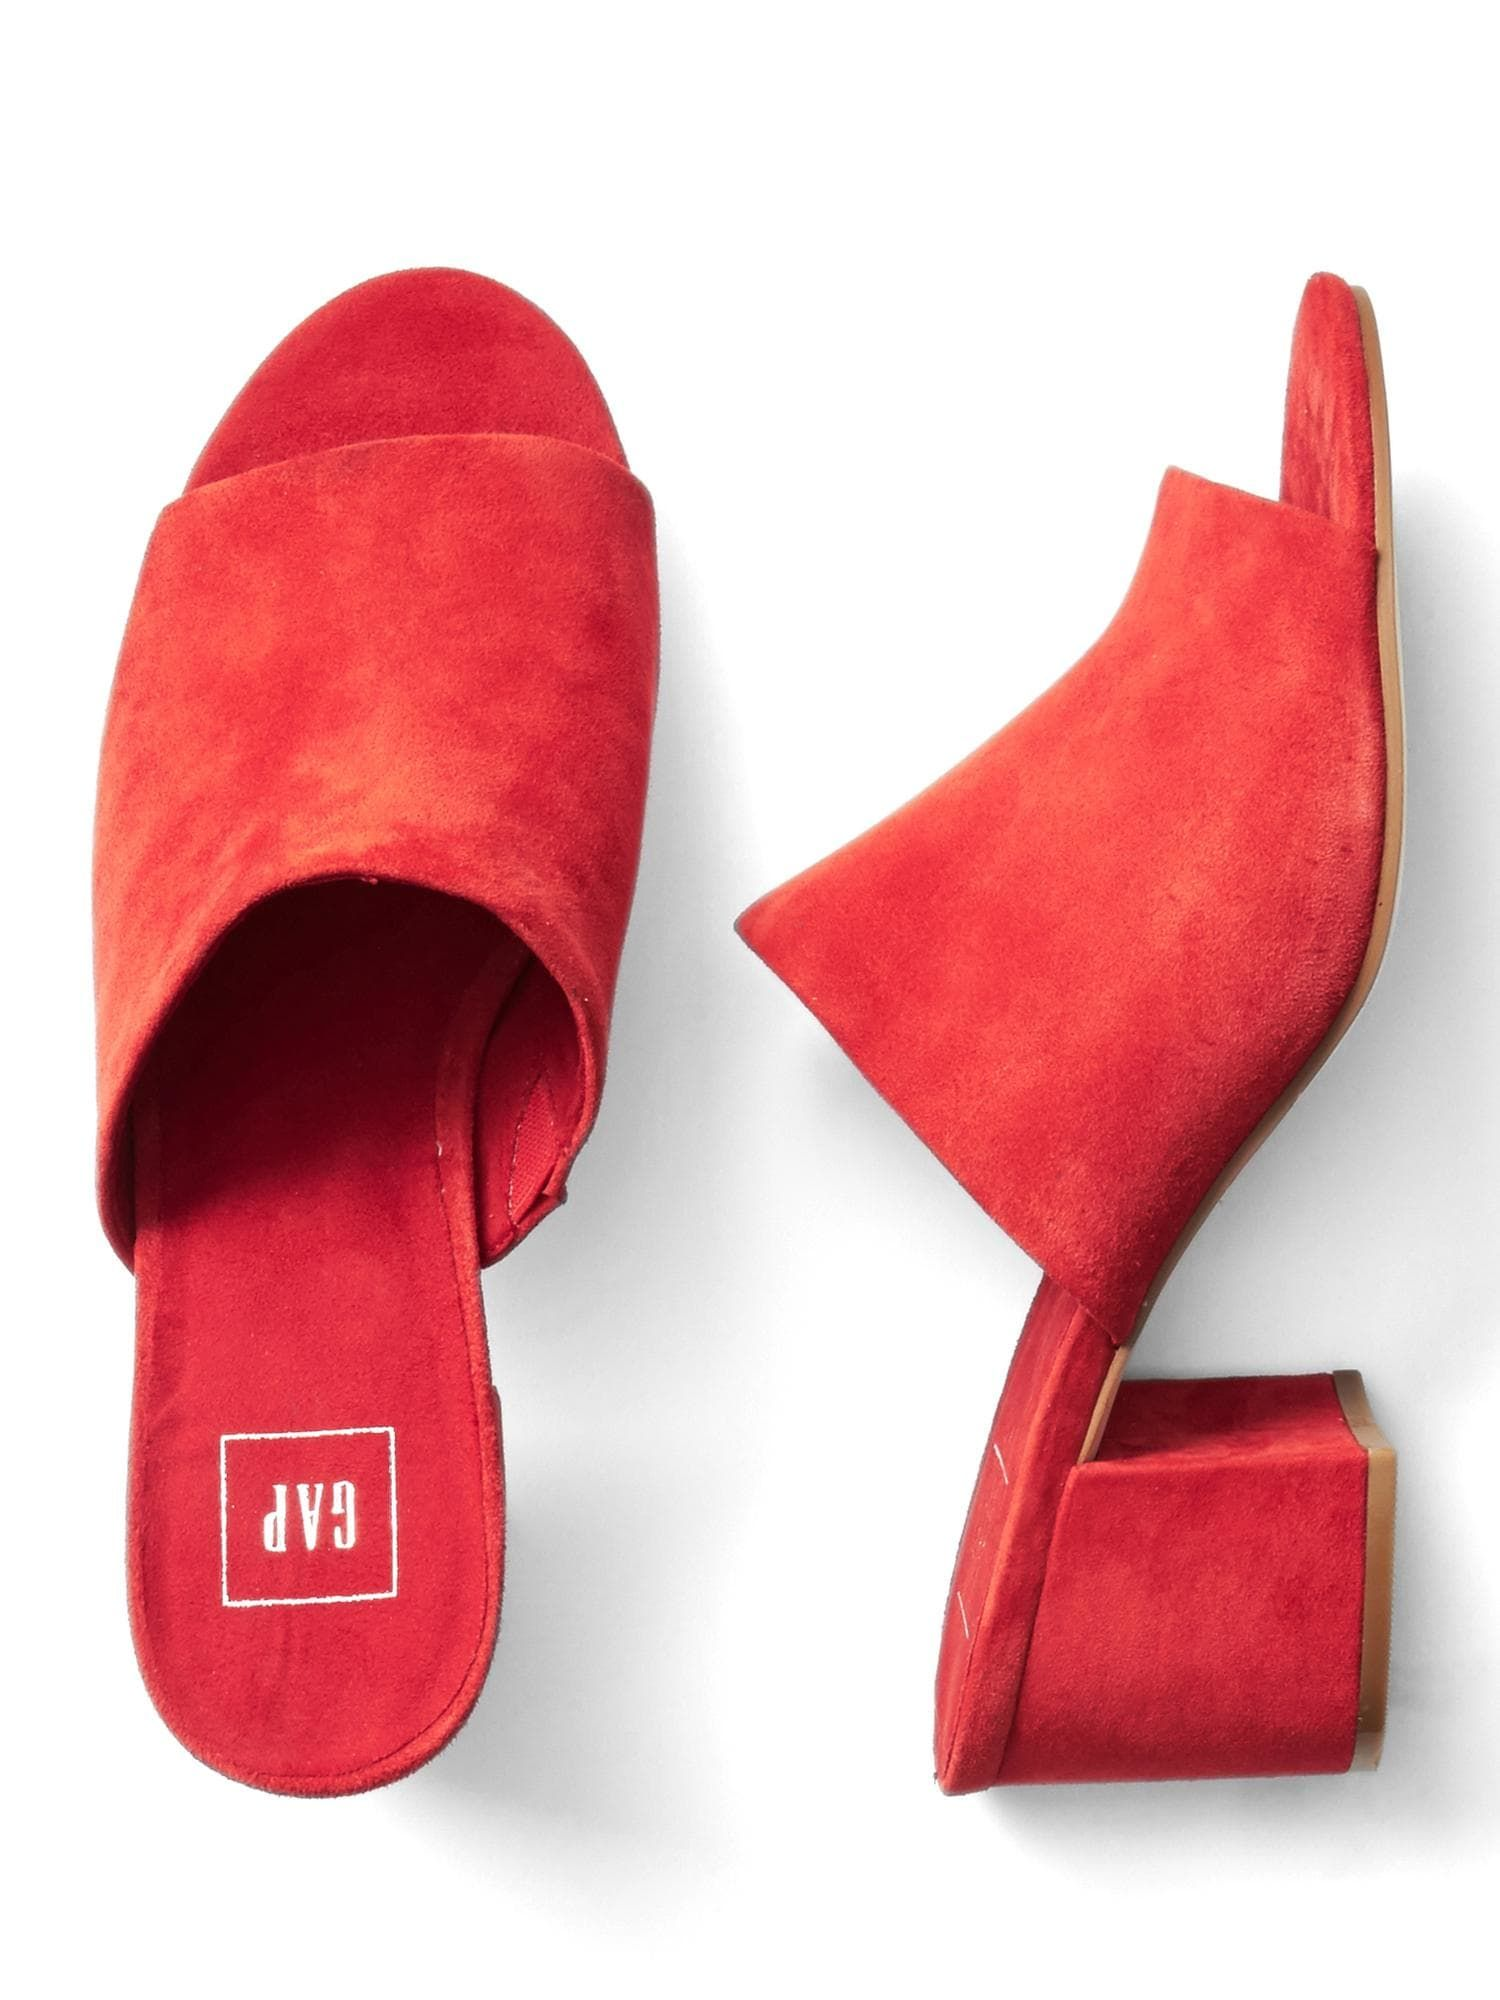 Open Toe Suede Mules Mules Shoes Heels Mules Shoes Street Style